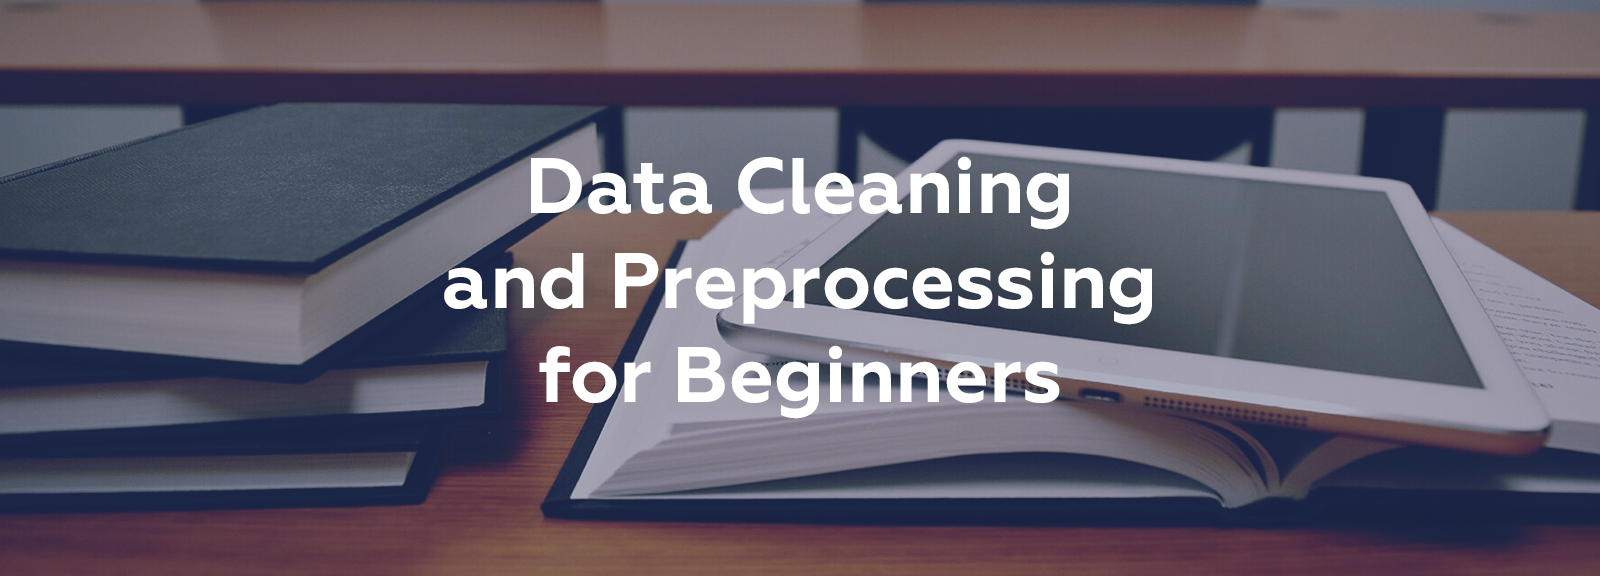 Data Cleaning and Preprocessing for Beginners - Sciforce